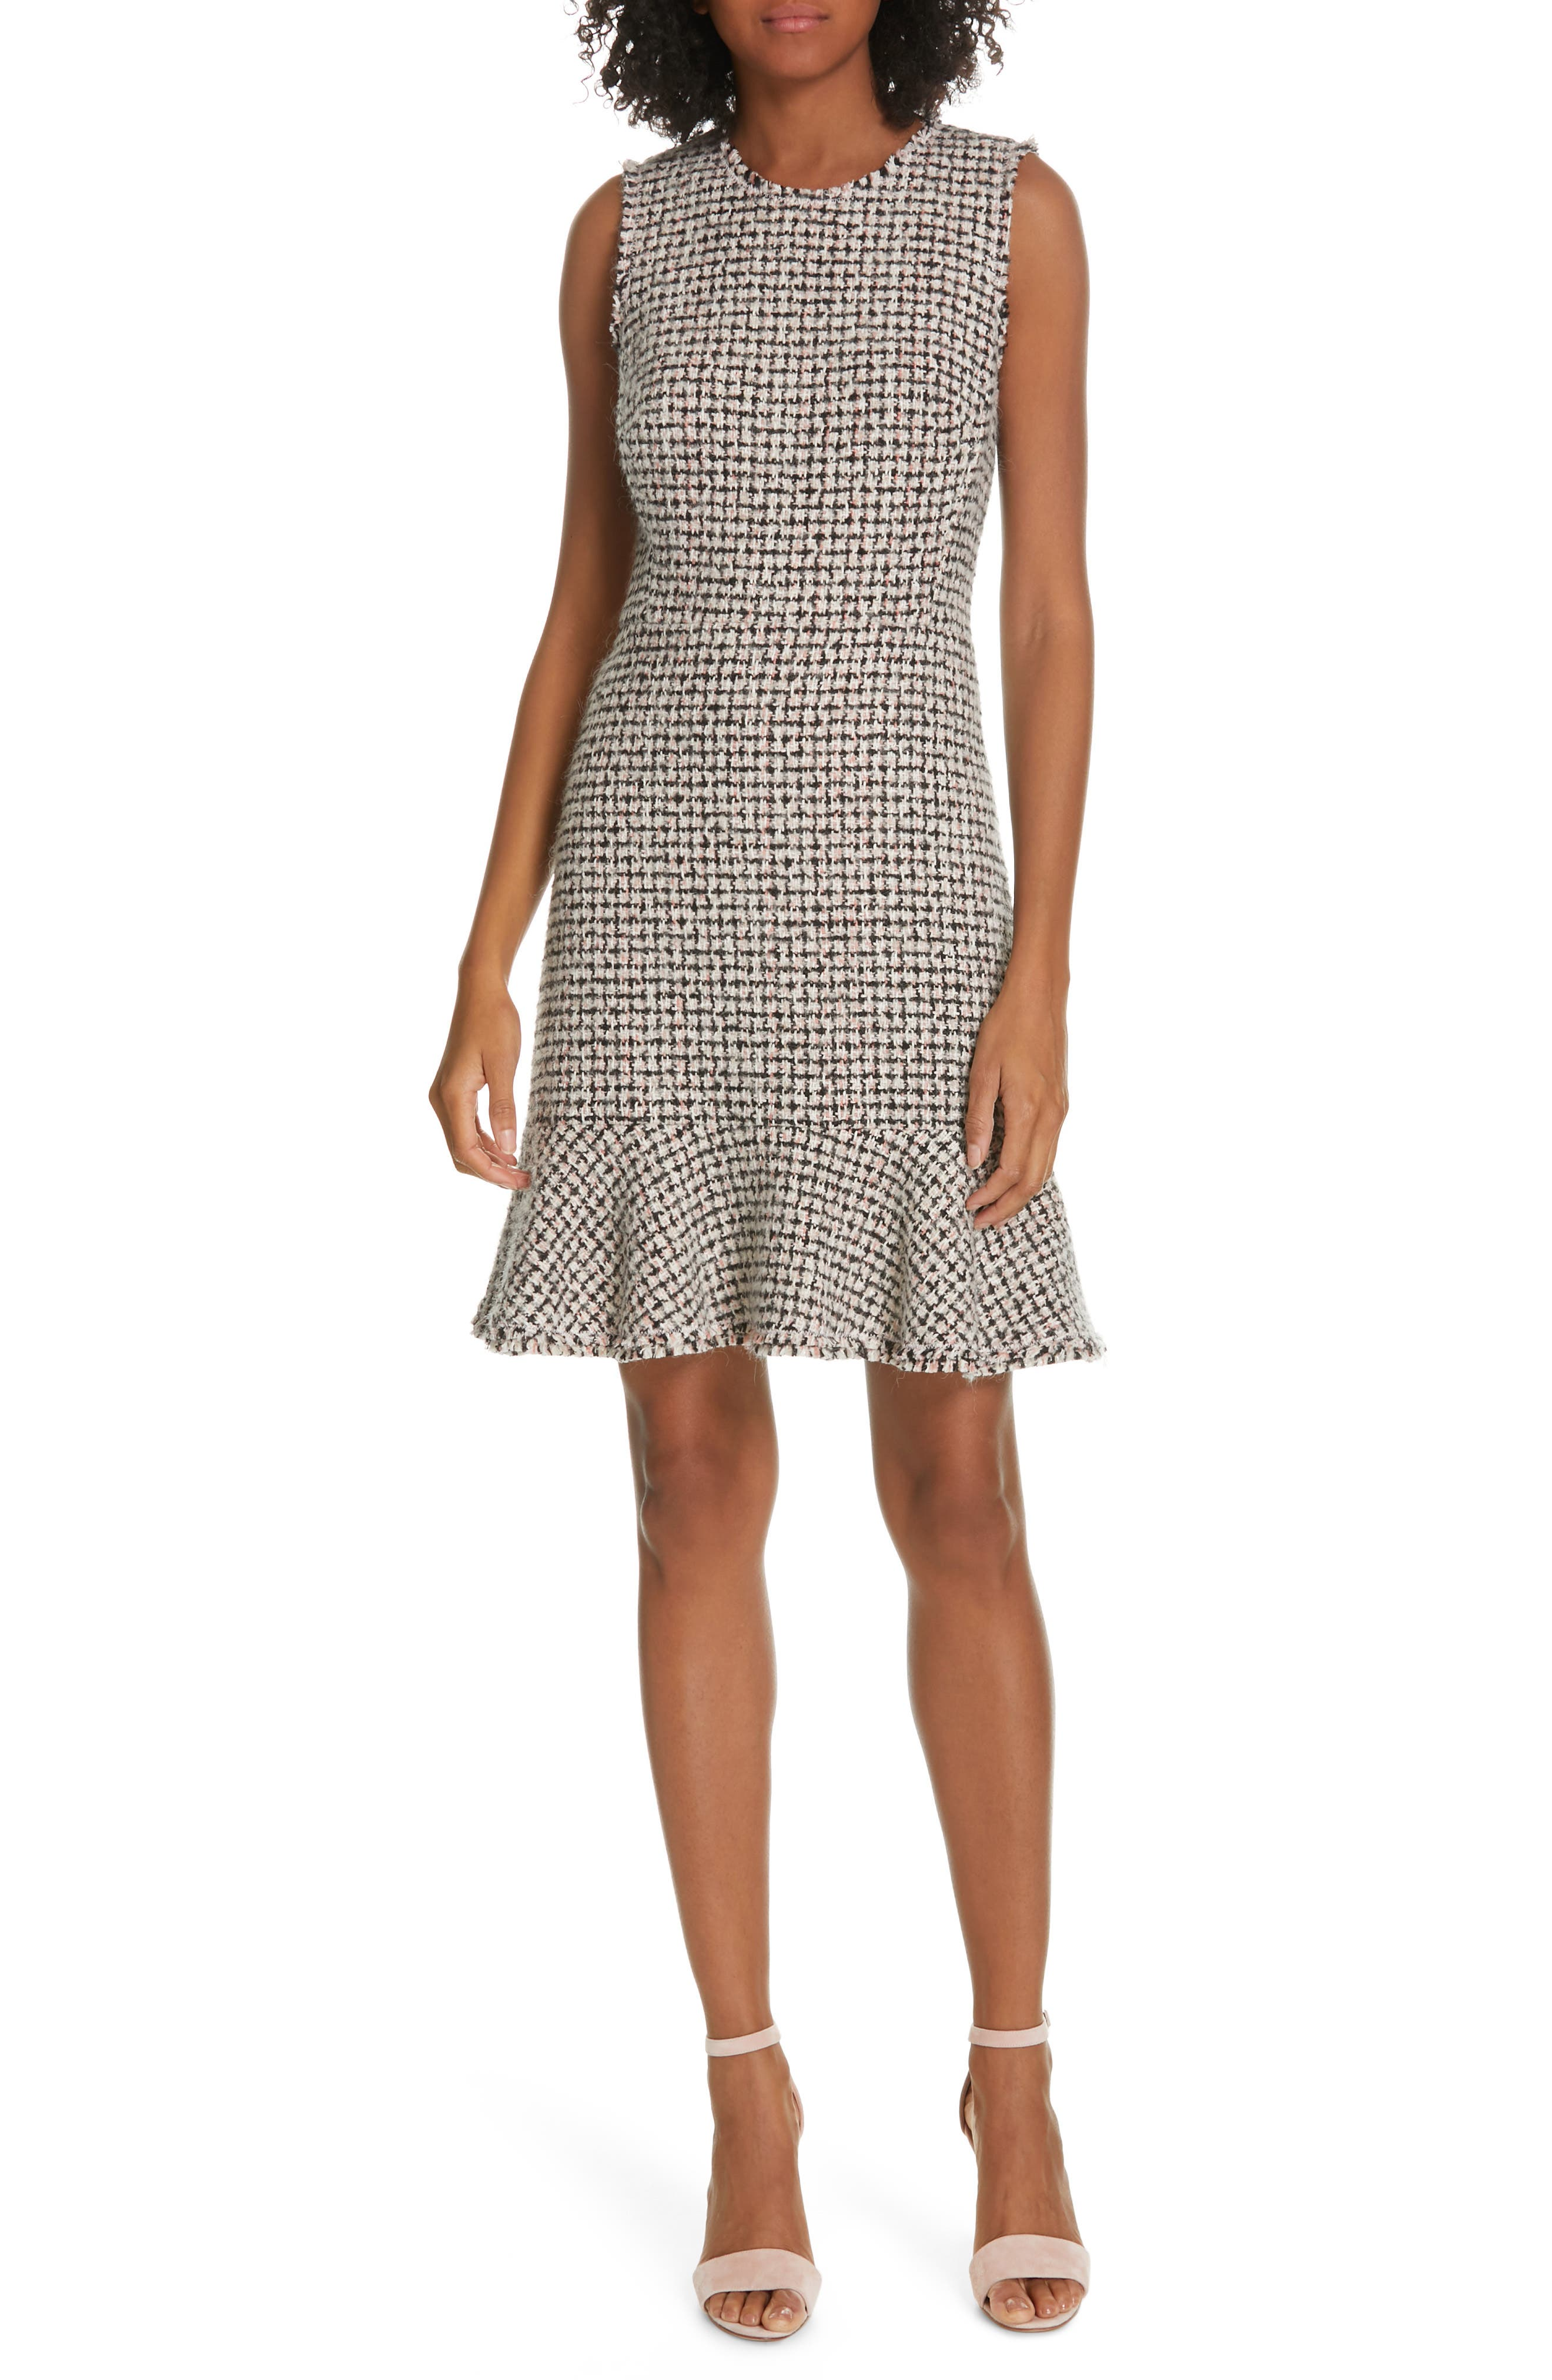 REBECCA TAYLOR Houndstooth Tweed Dress, Main, color, BLACK/ PINK COMBO